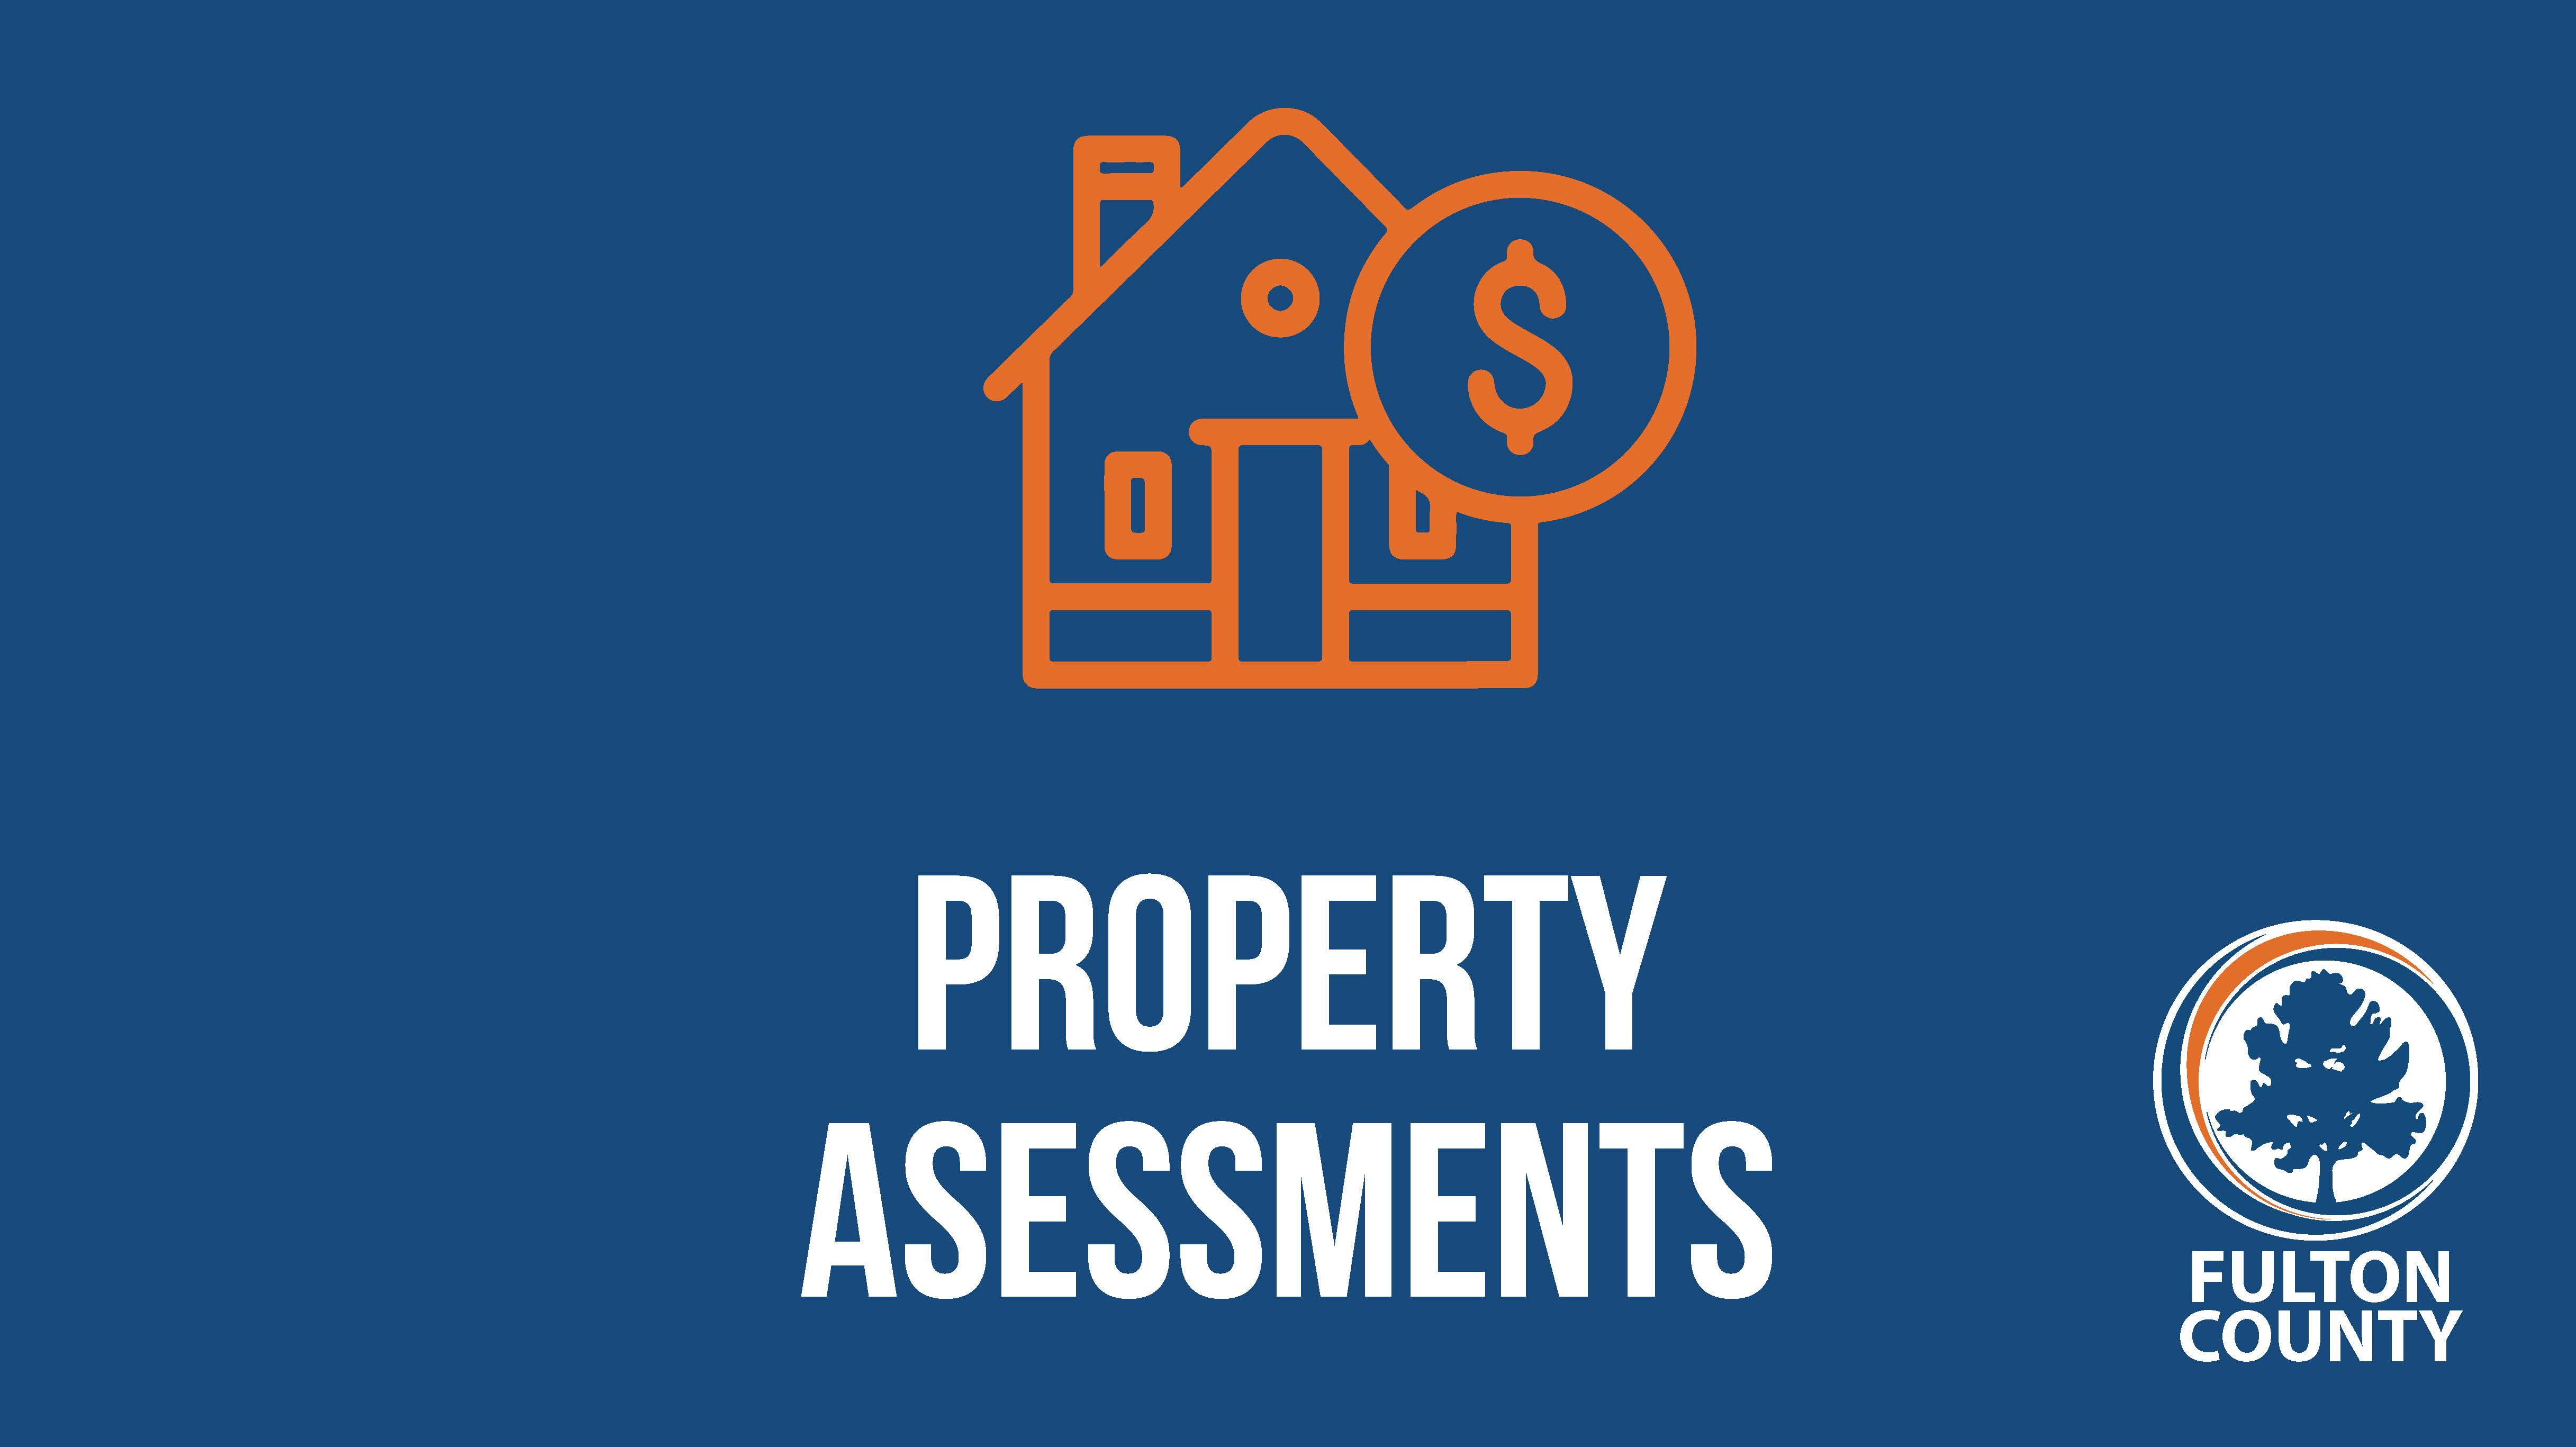 Property Assessments house icon